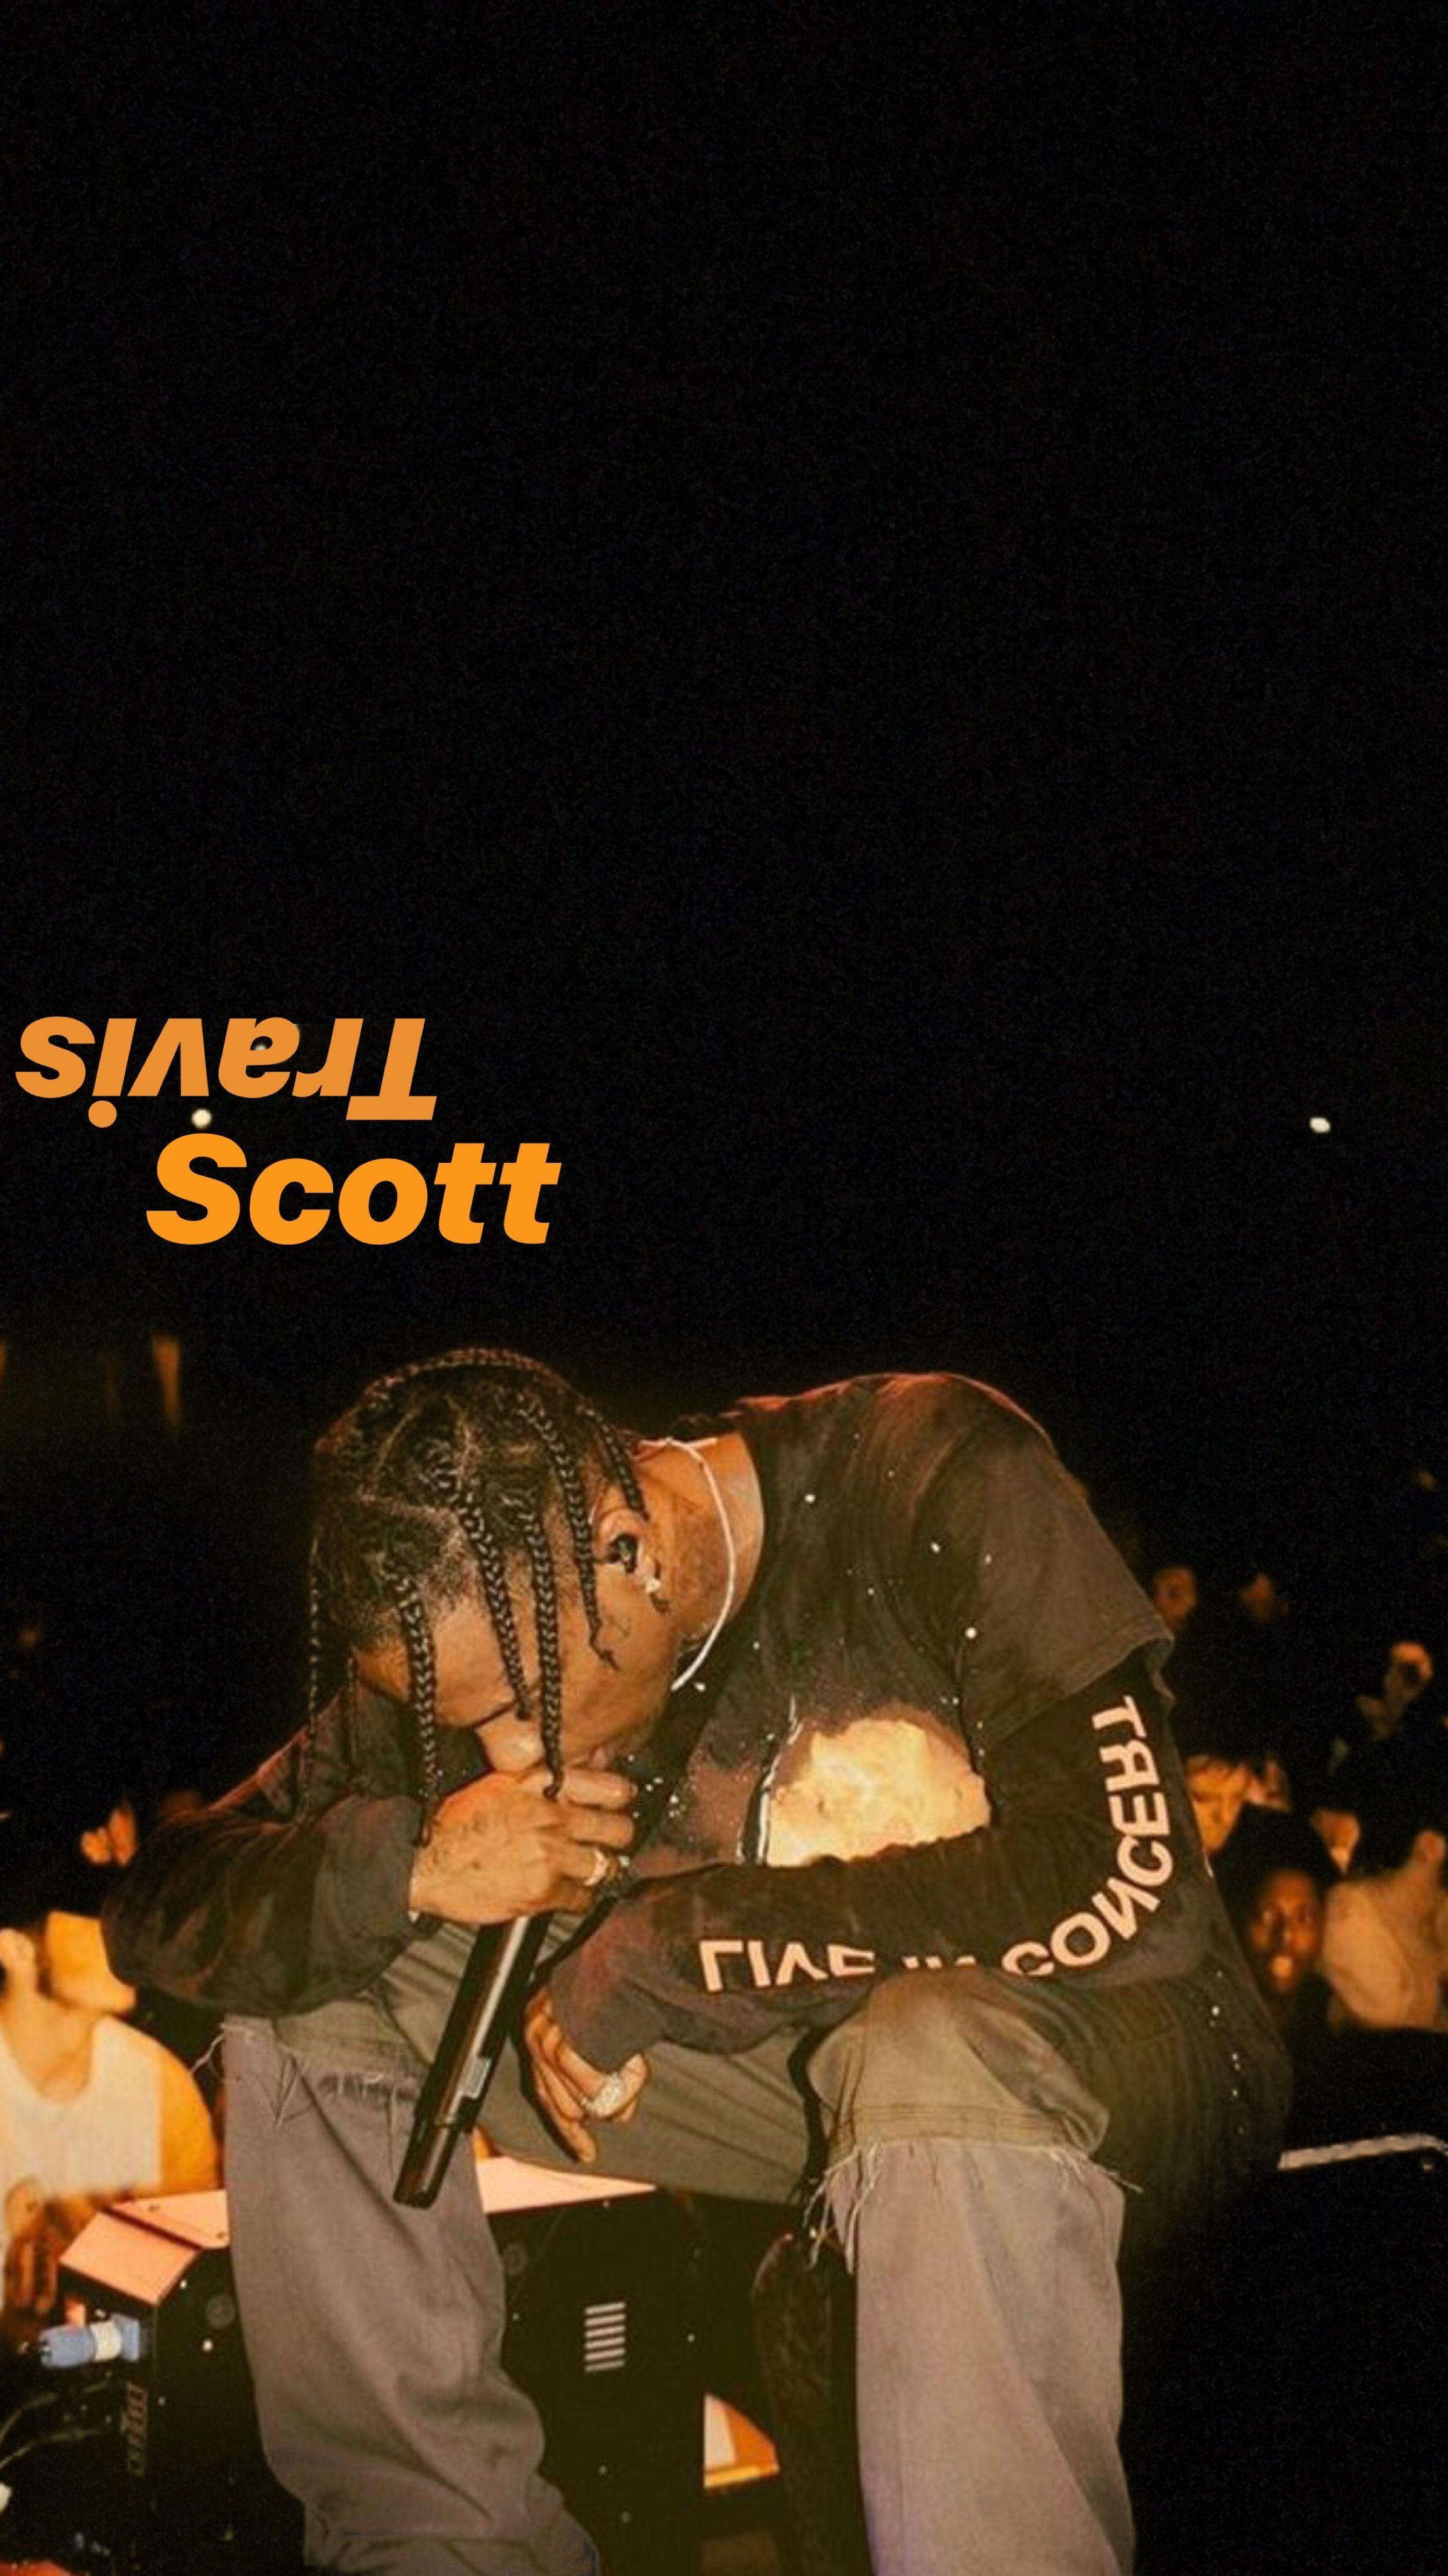 Astroworld Aesthetic Wallpapers Wallpaper Cave